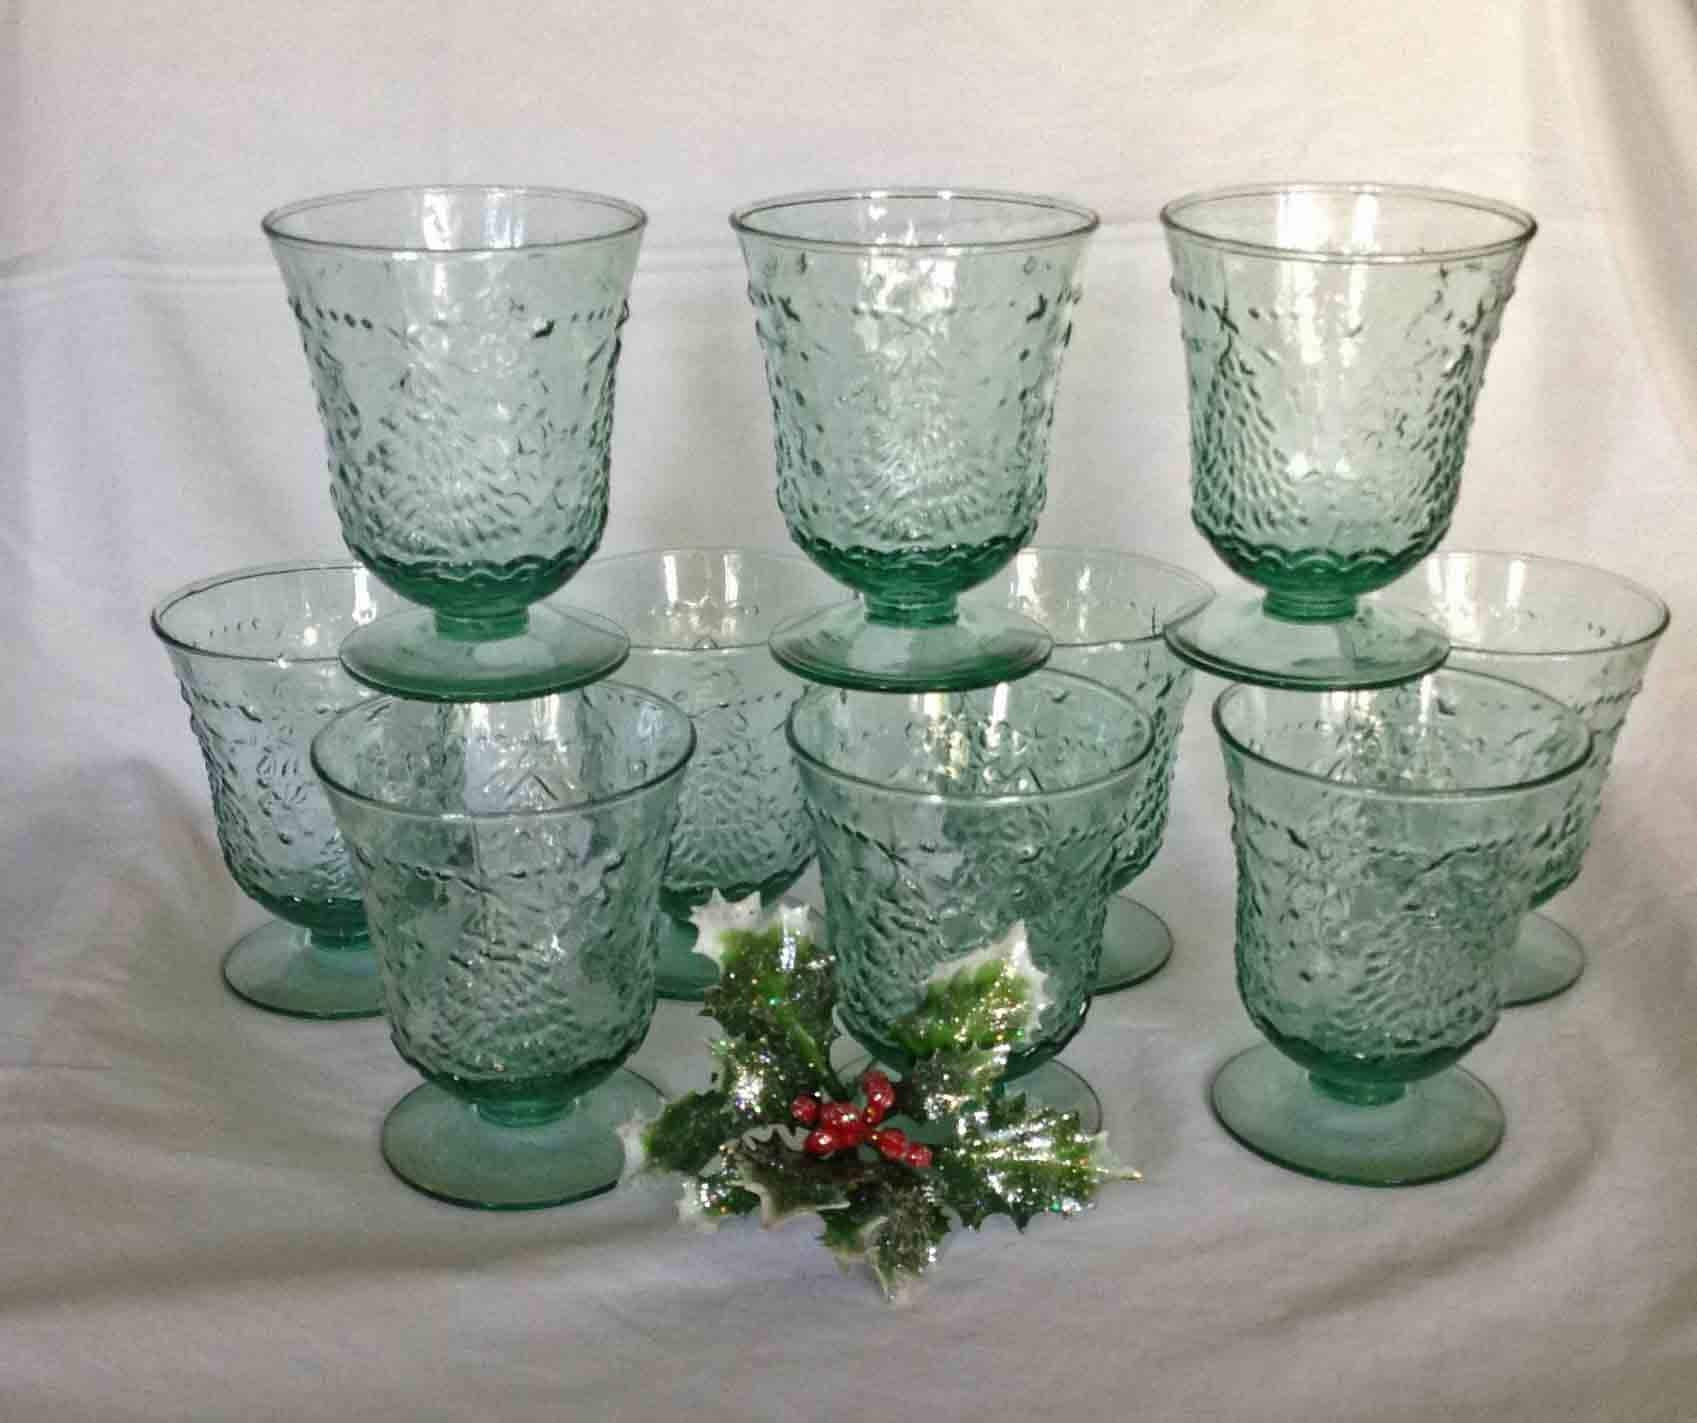 10 mikasa studio nova holiday cheer glasses mint condition green textured holiday glasses - Christmas Drinking Glasses